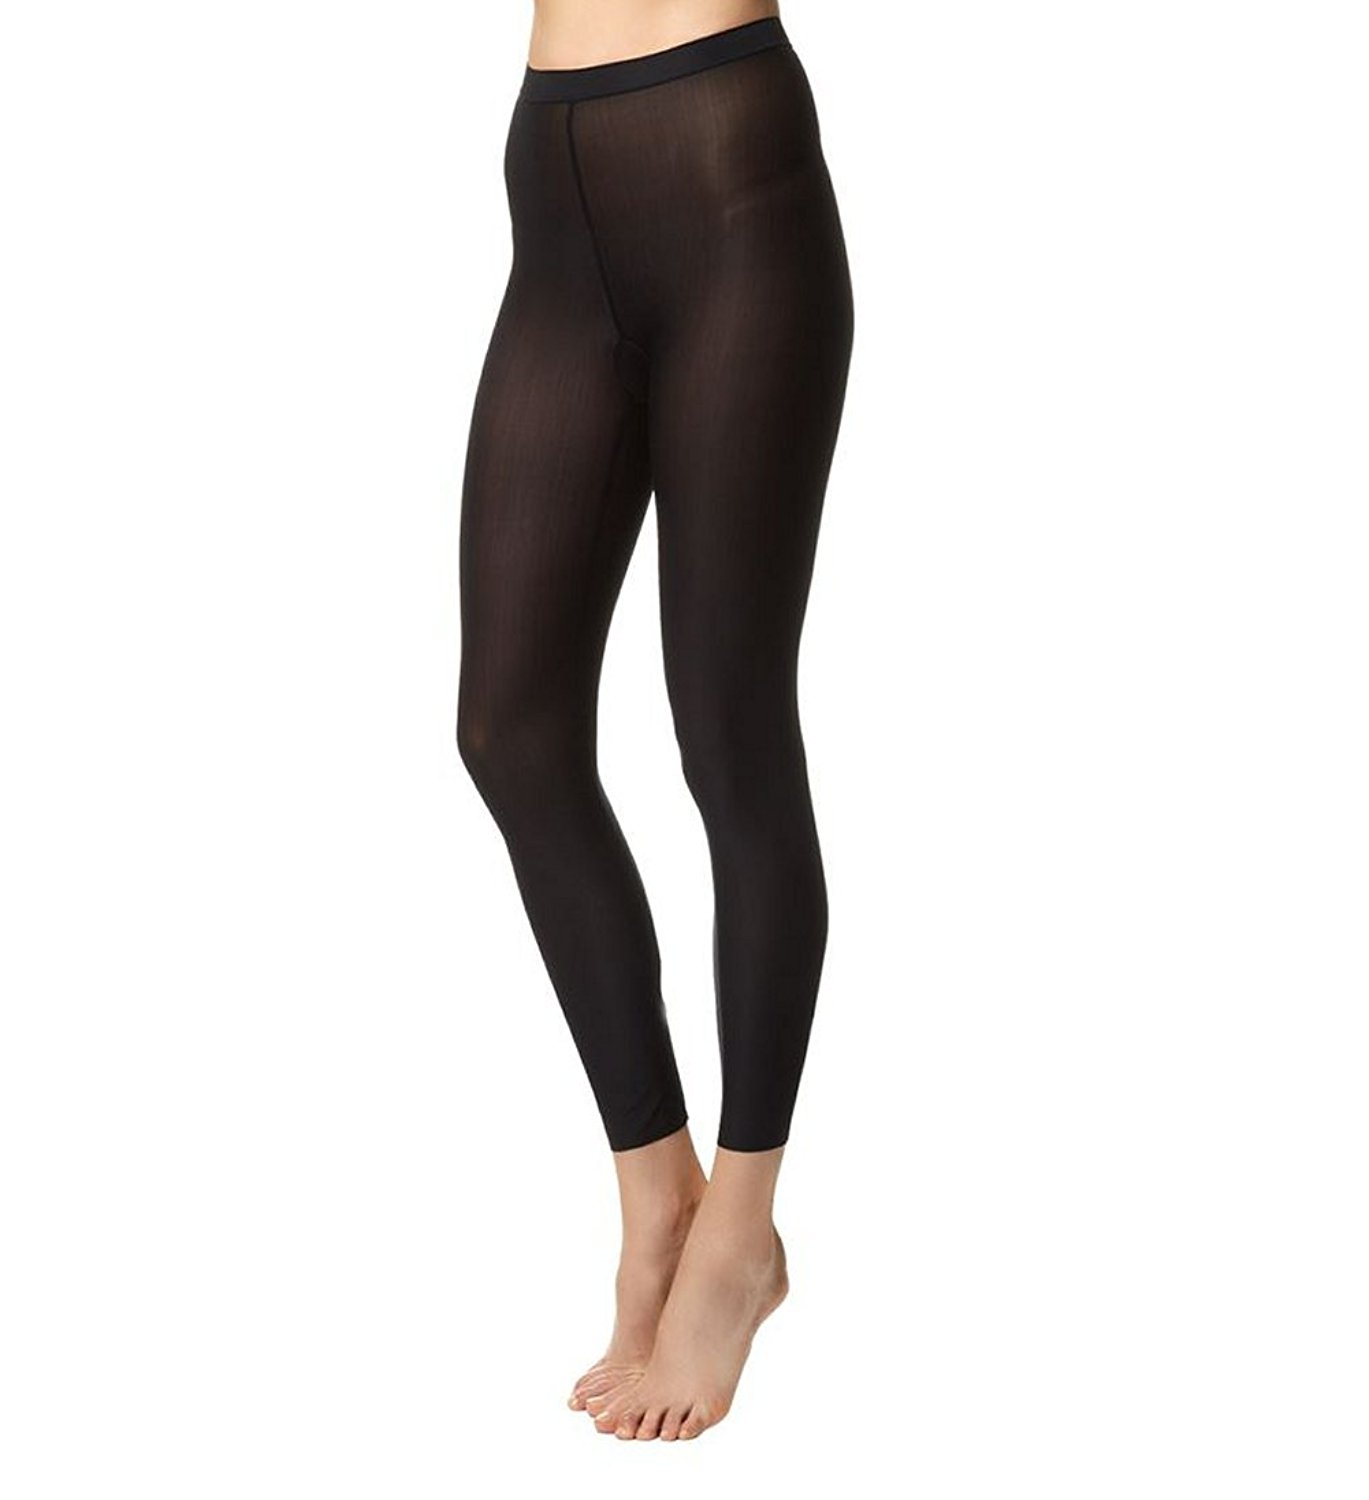 08586a4d496ba Wacoal Smooth Complexion Shapewear Legging (804251) M Black